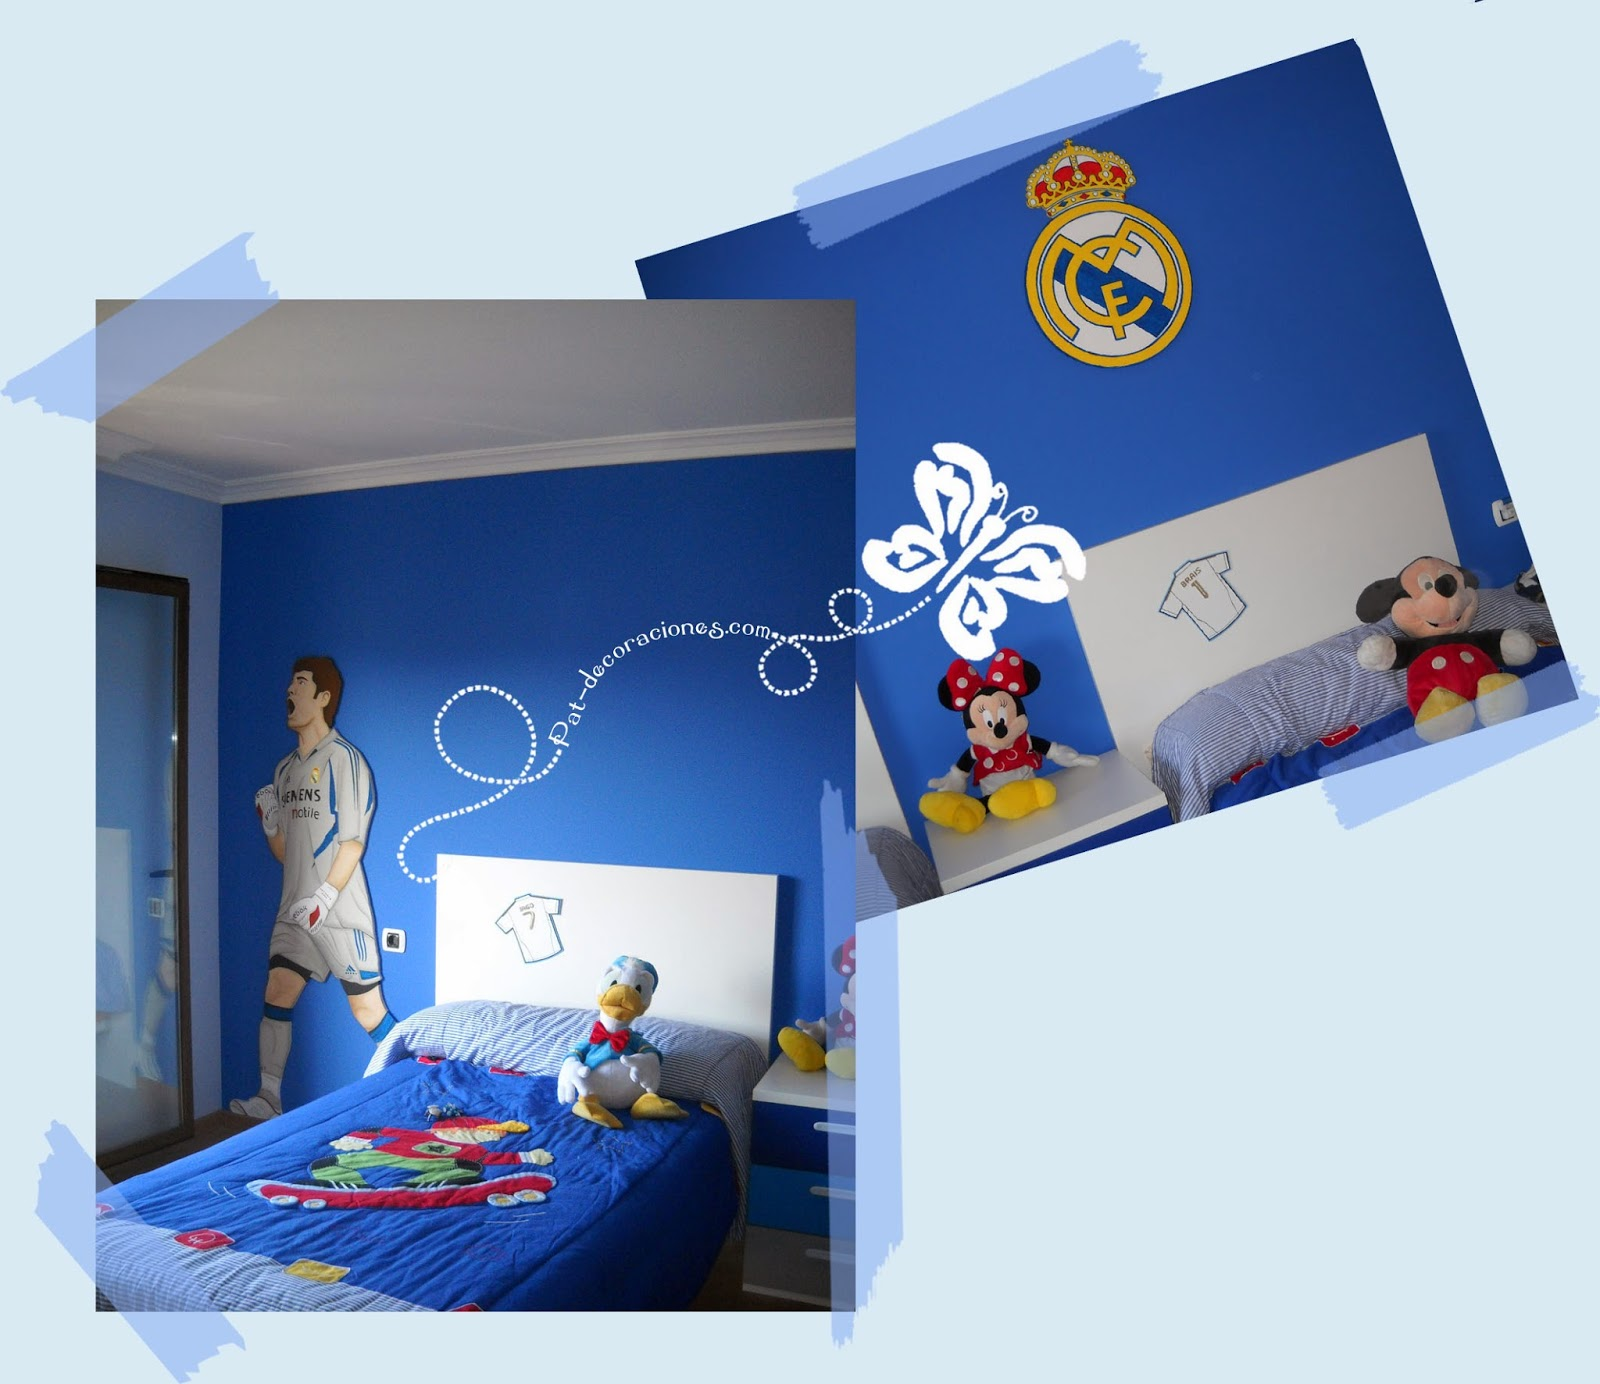 Pat decoraciones habitacin del real madrid habitacin del real madrid altavistaventures Images